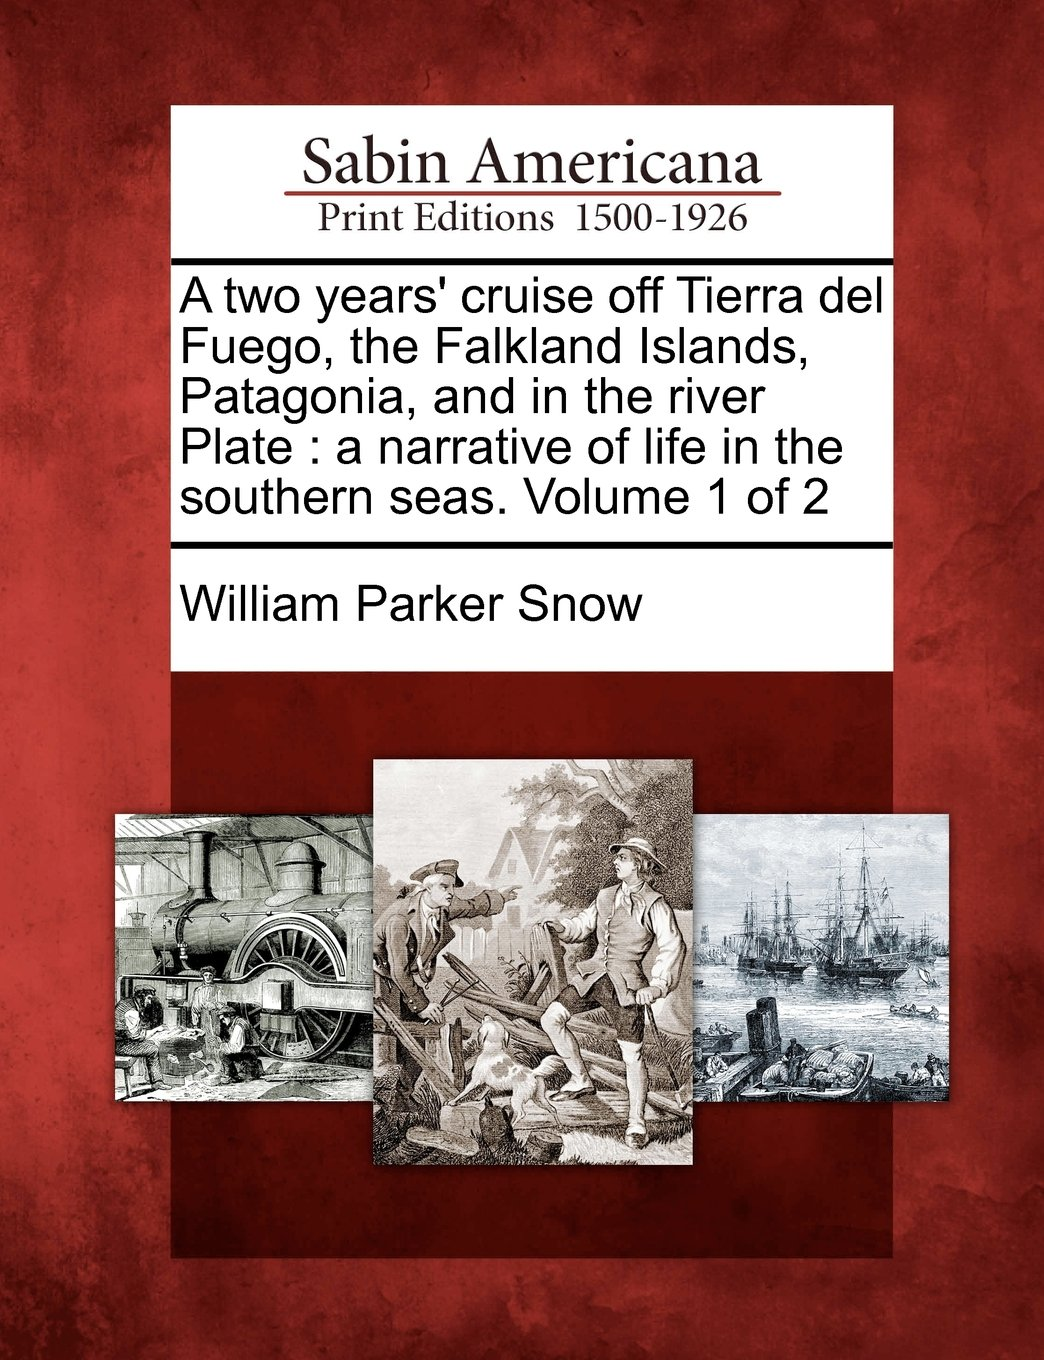 Download A two years' cruise off Tierra del Fuego, the Falkland Islands, Patagonia, and in the river Plate: a narrative of life in the southern seas. Volume 1 of 2 ebook